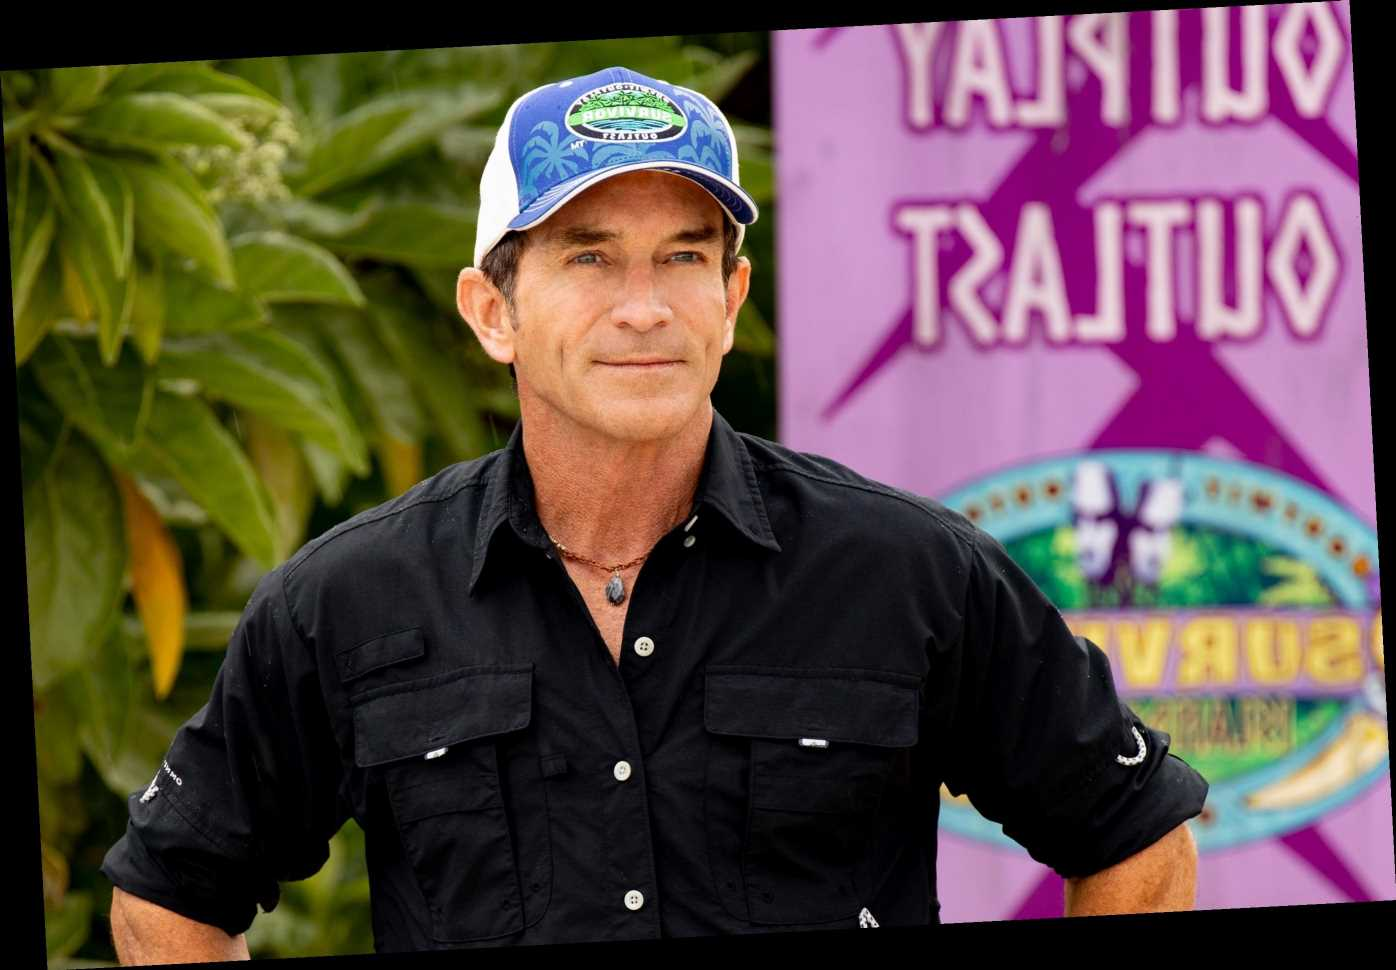 Survivor host Jeff Probst didn't know of Dean and Kellee connection